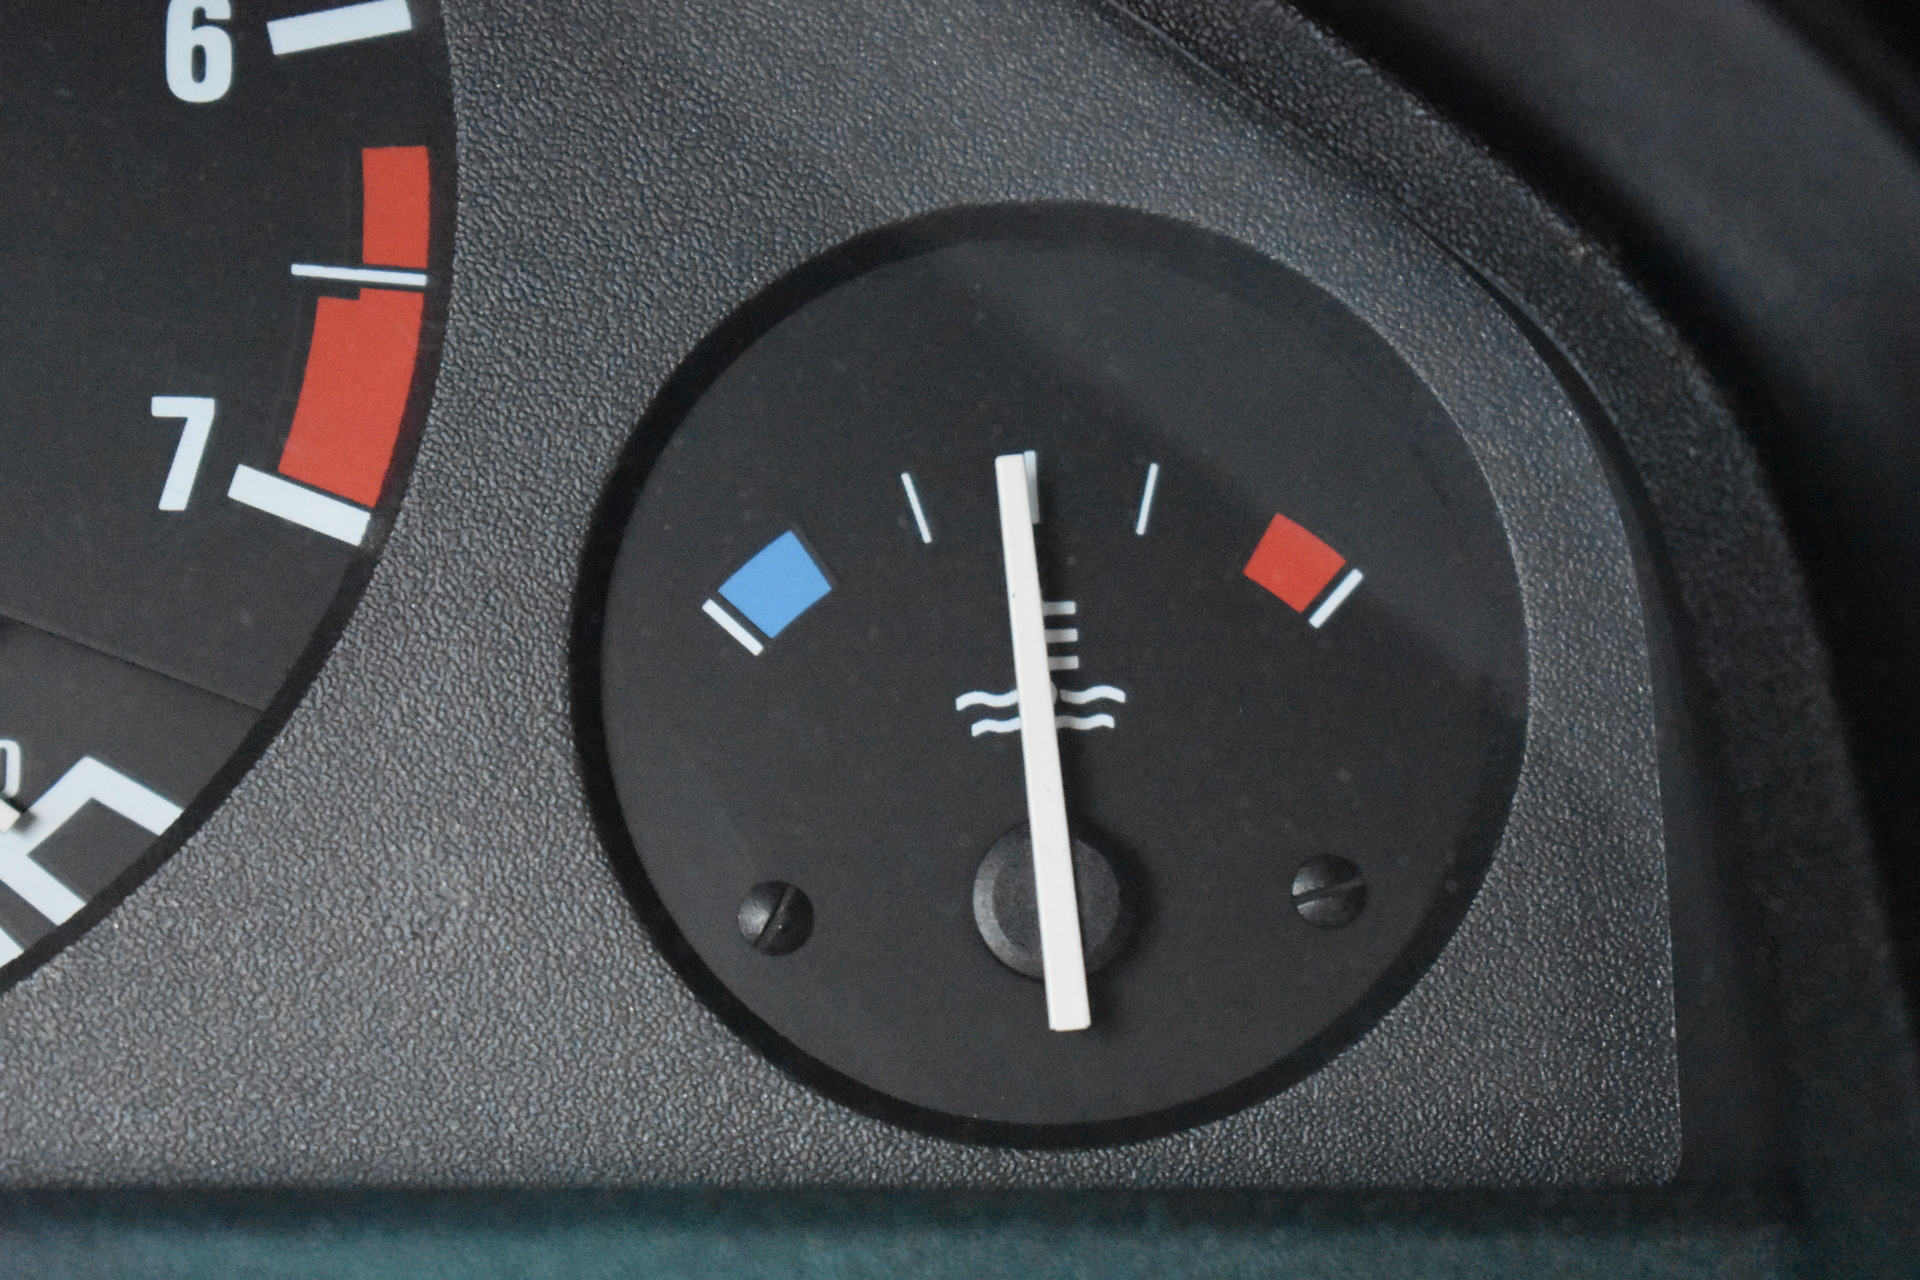 BMW E30 Buyers Guide Temp Gauge